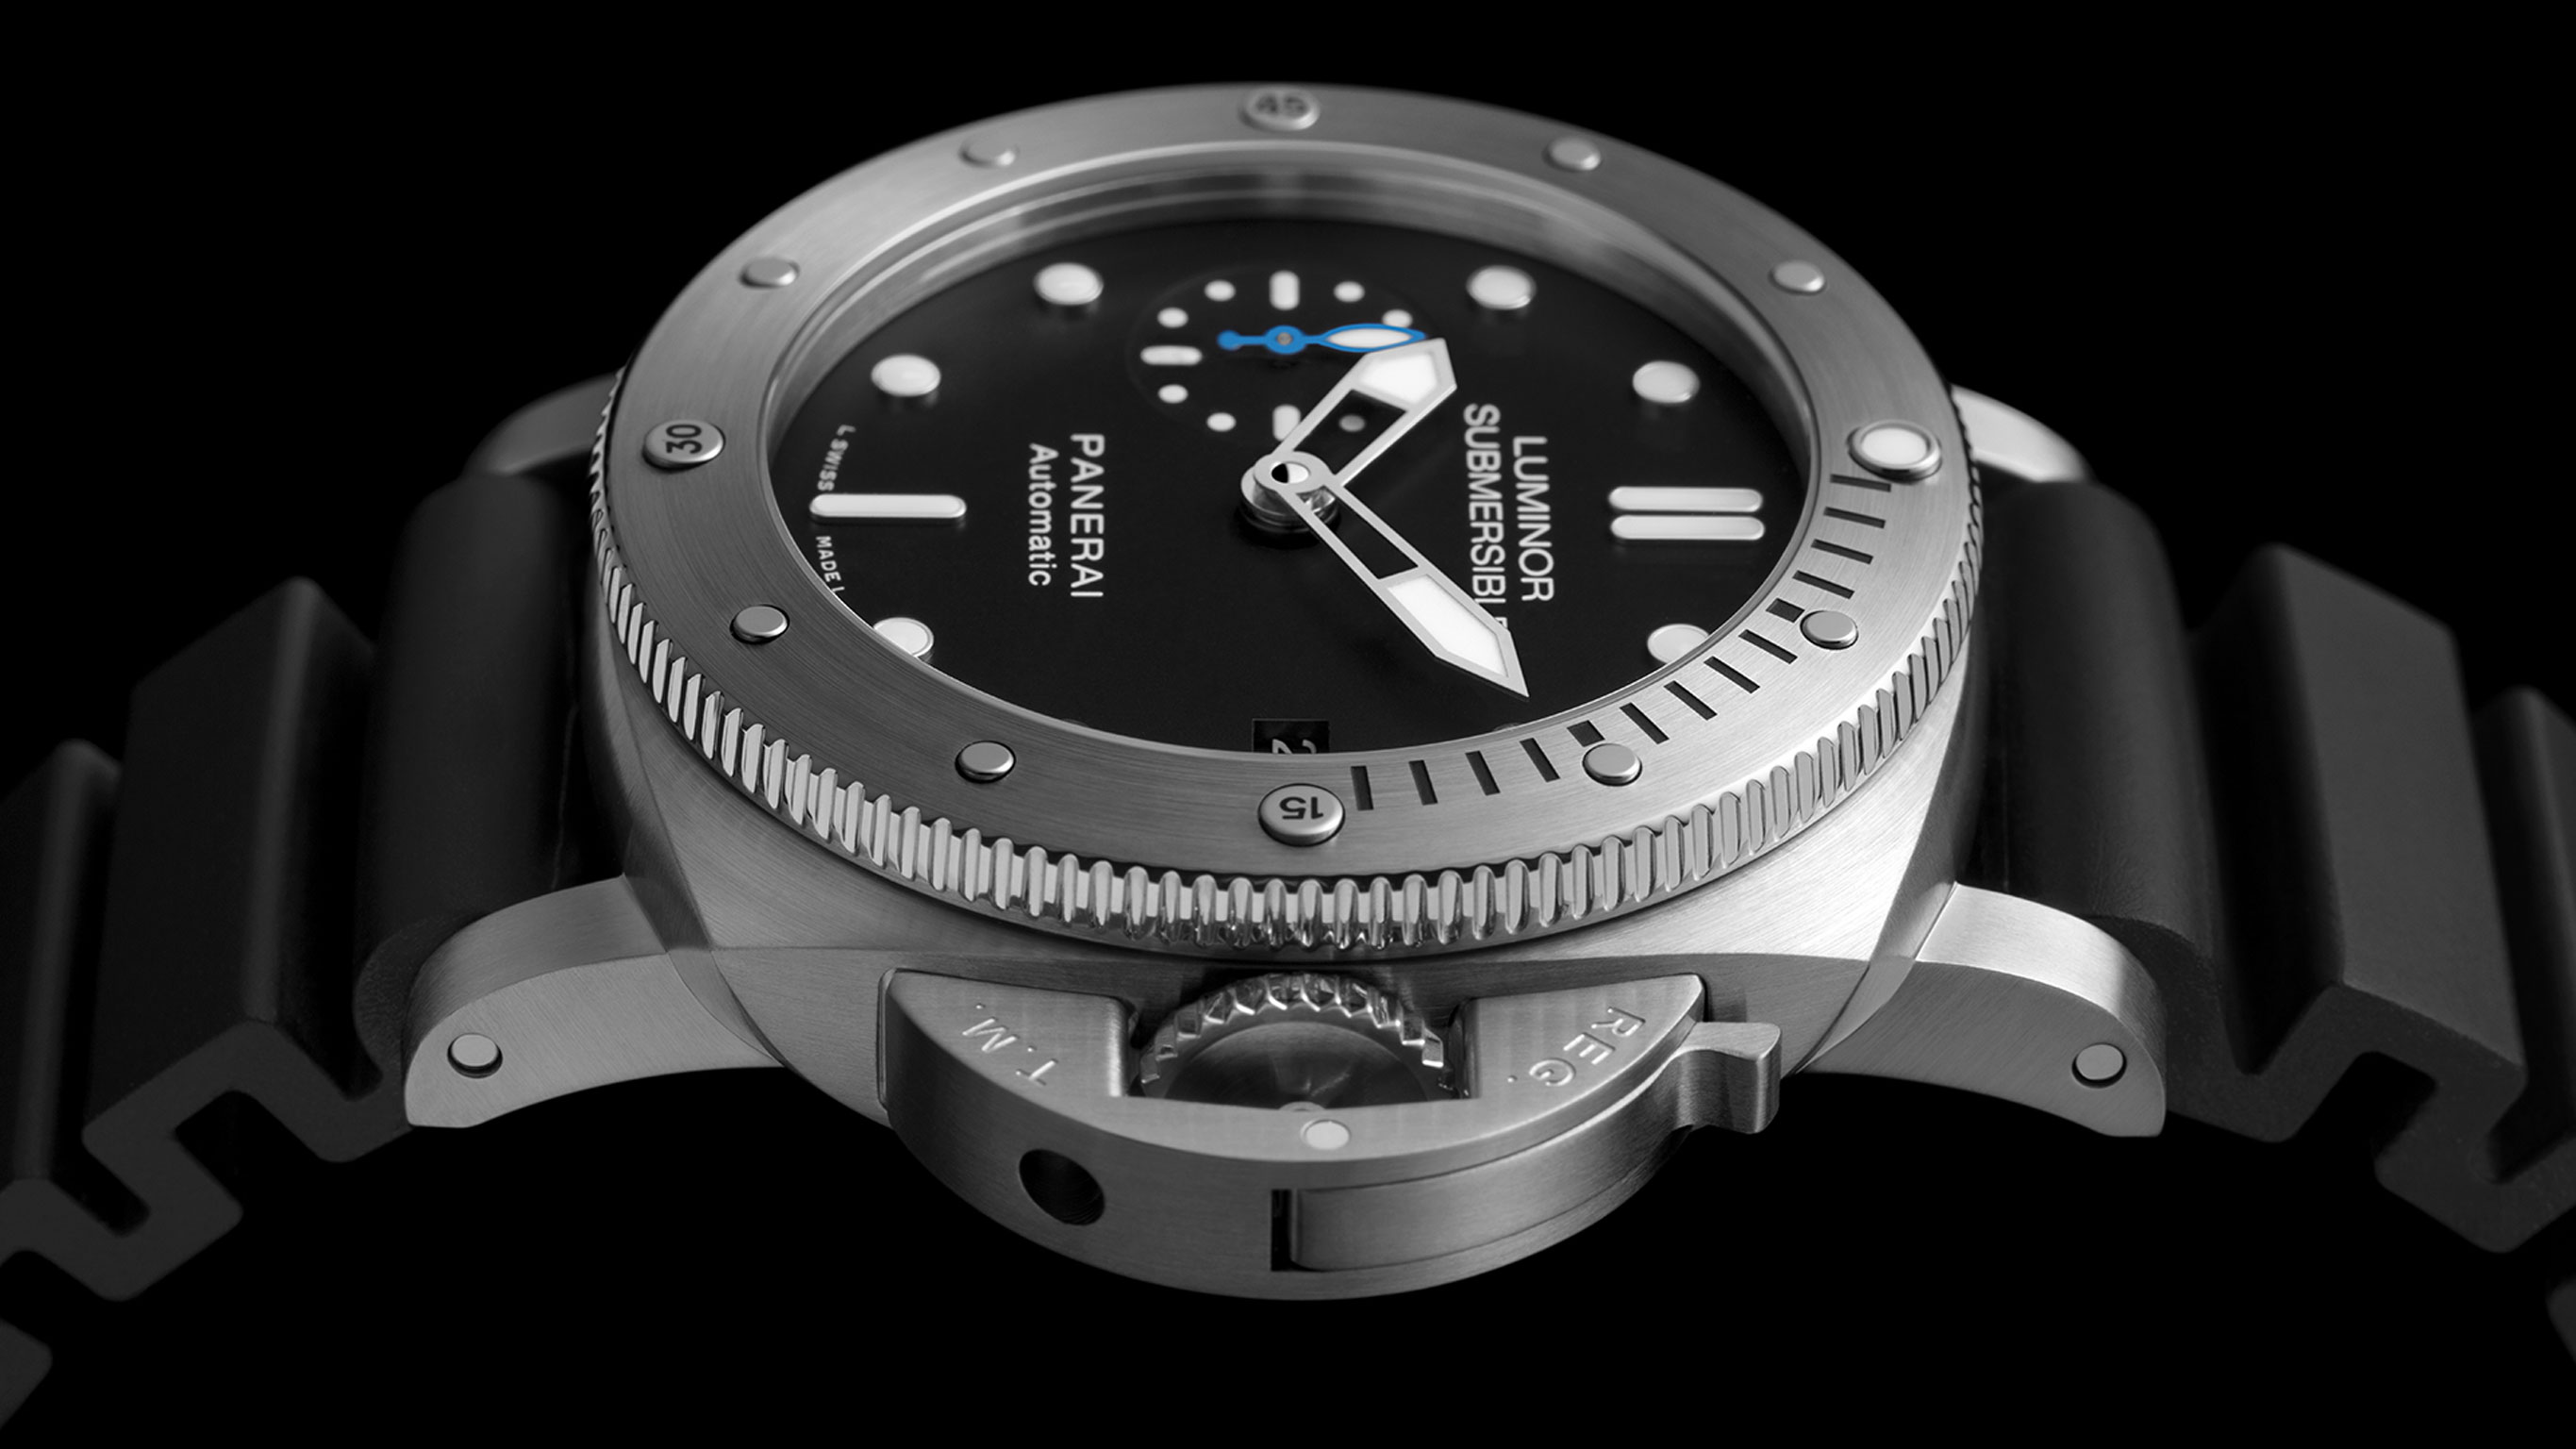 Panerai Luminor Submersible 1950 3 Days Automatic 42mm